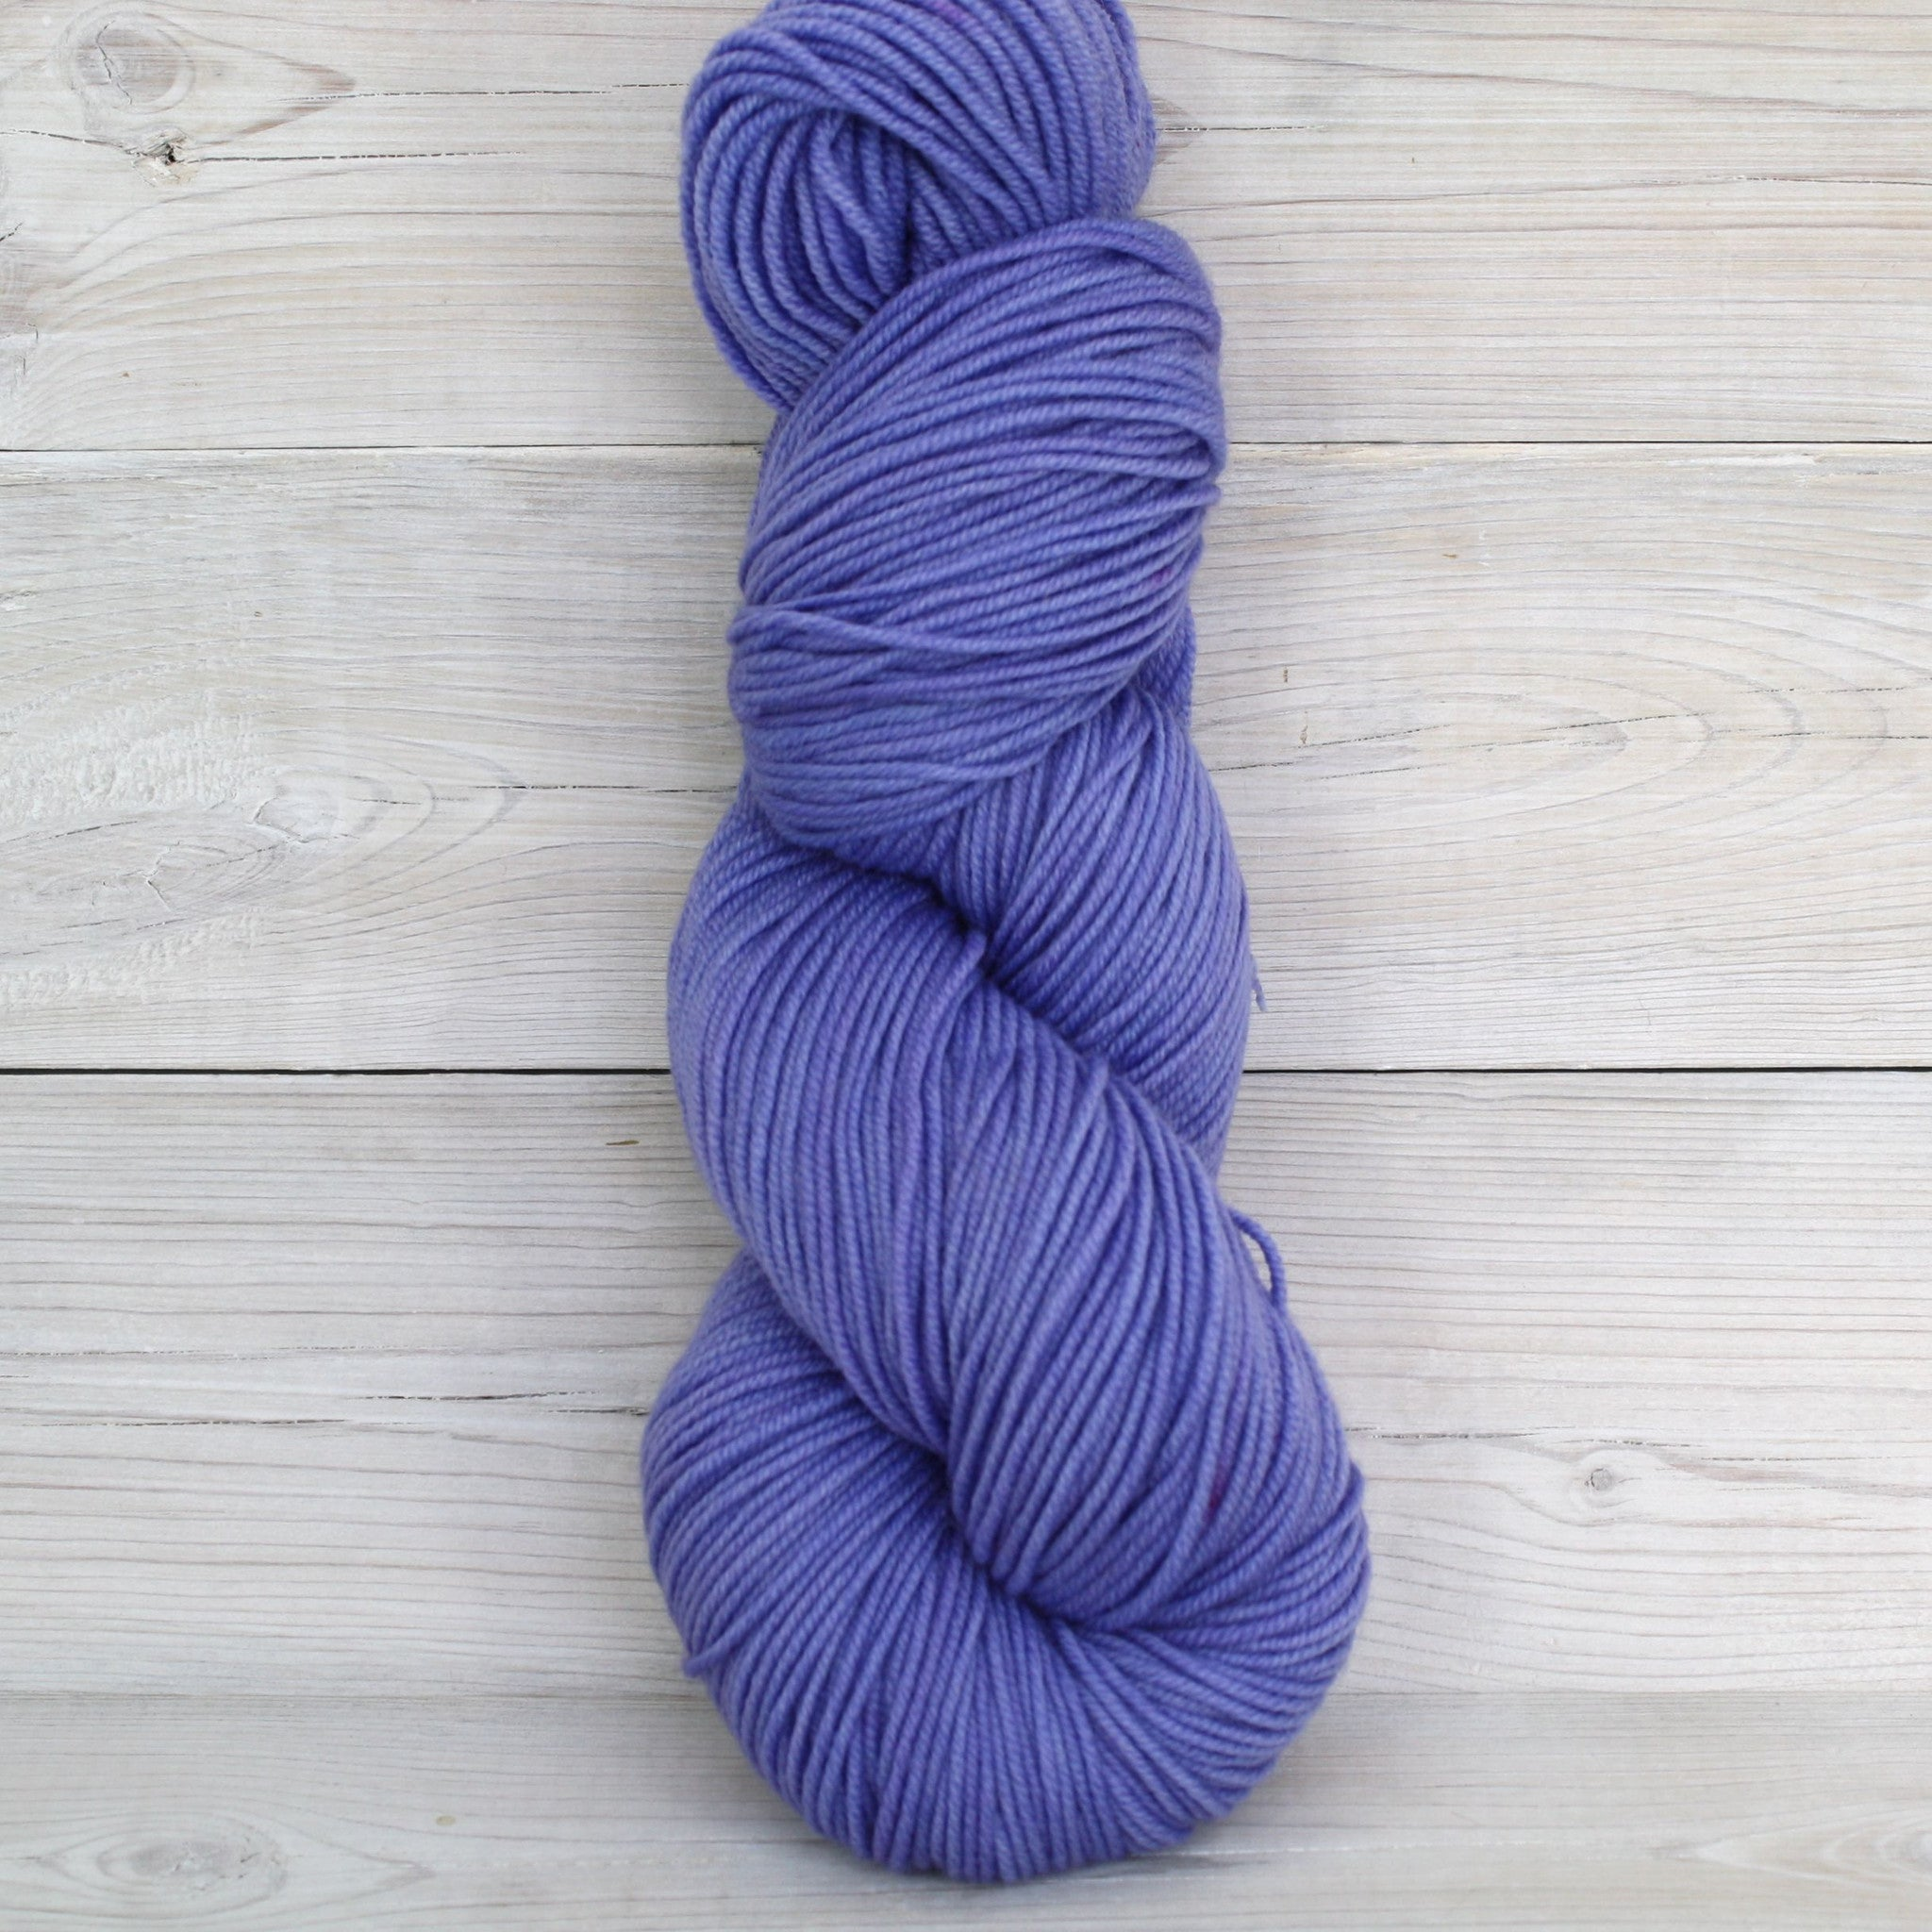 Aspen Sport Yarn | Colorway: Columbine | Overstock